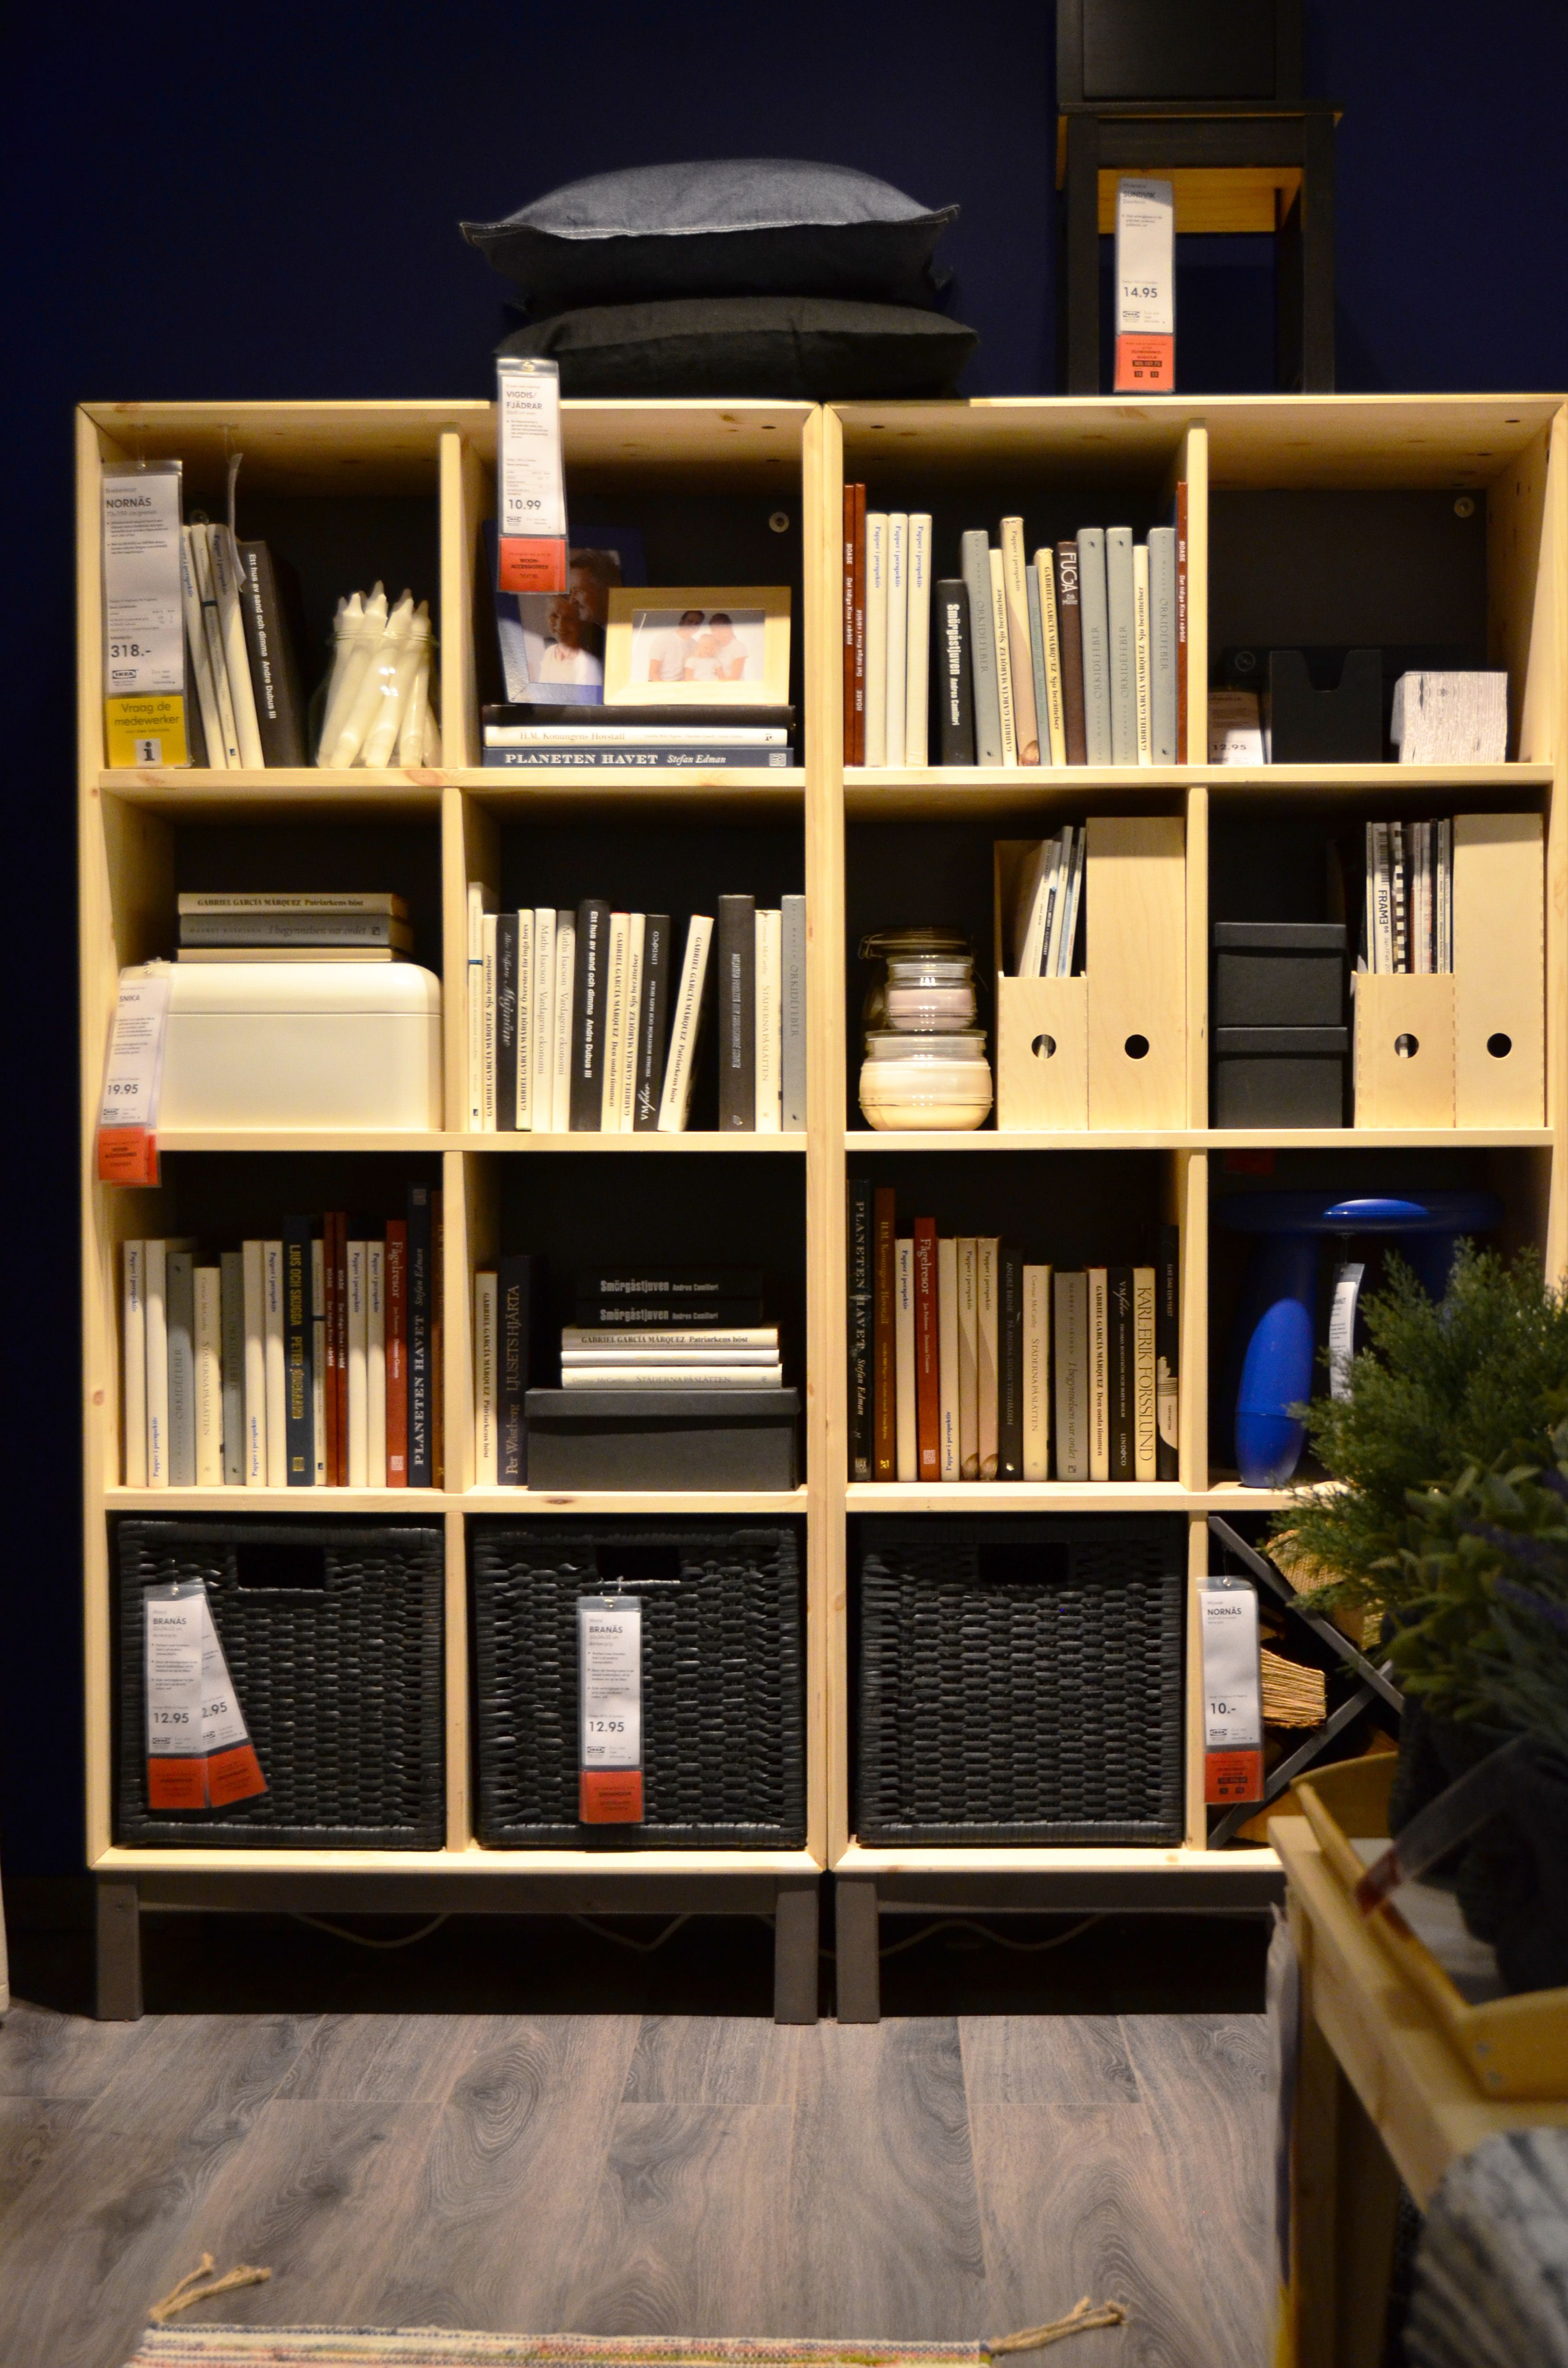 ikea delft   nornÄs bookcase   store and organise   www.ikea